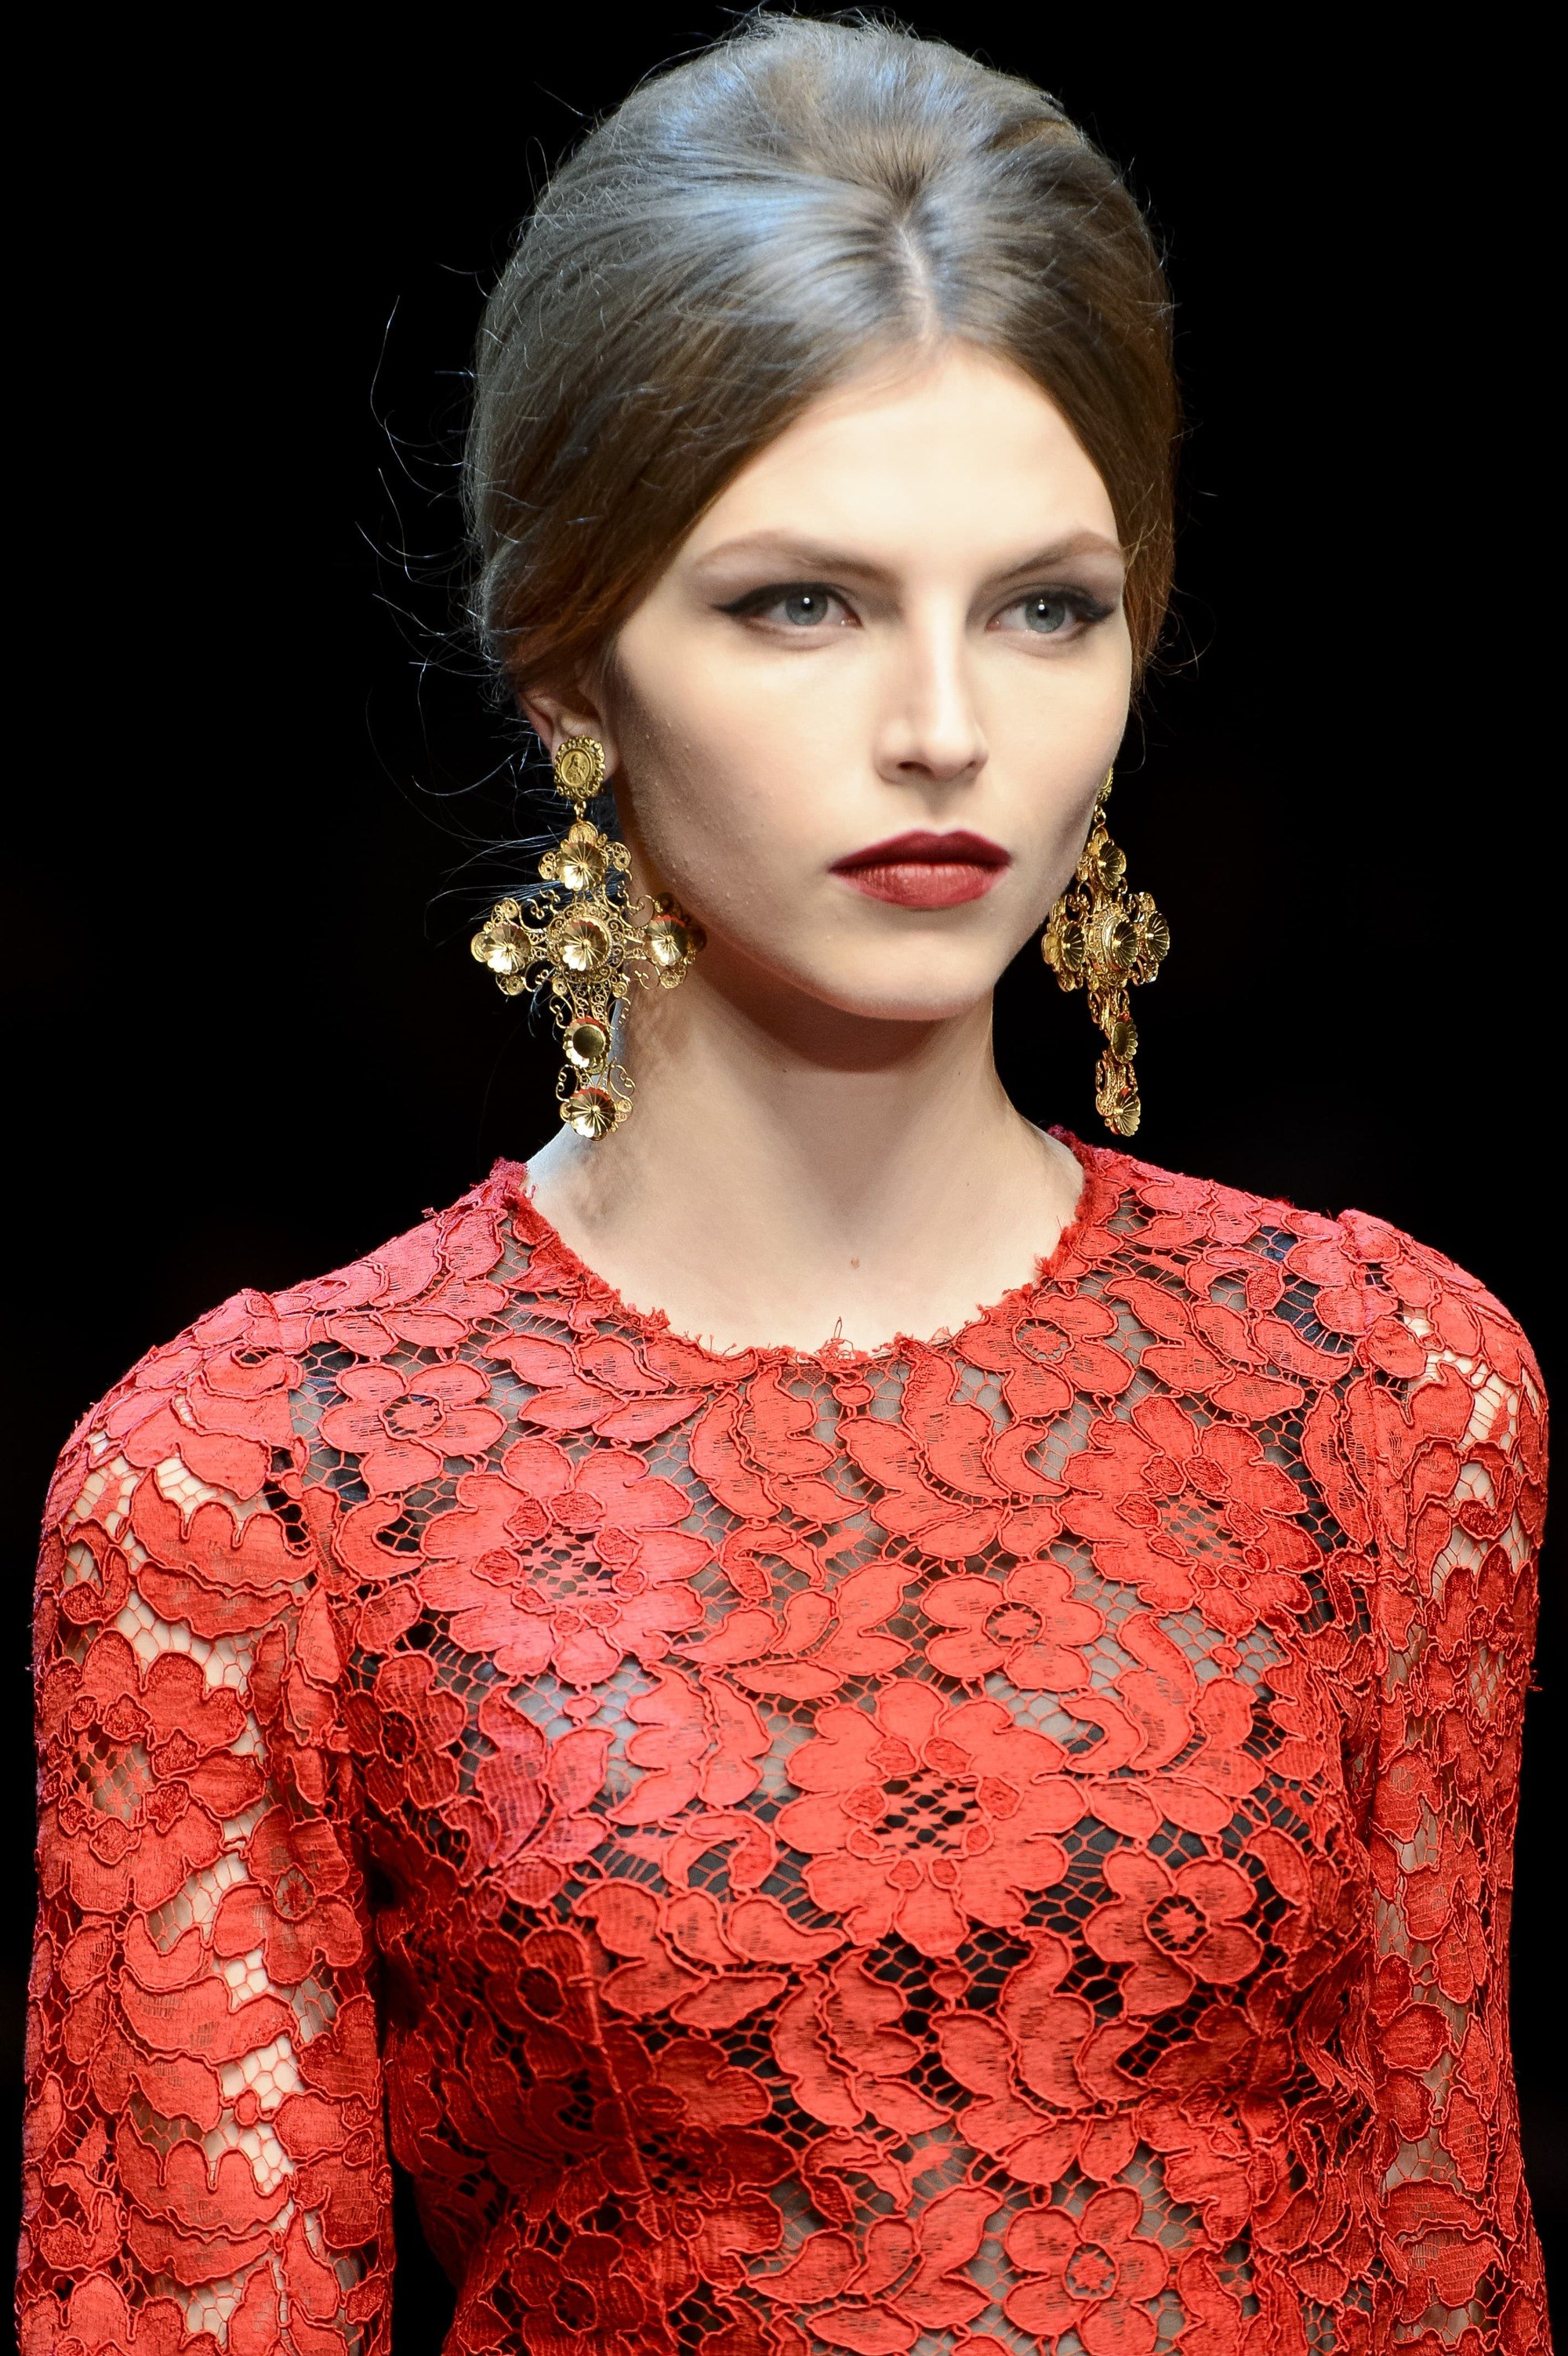 close up shot of model on the d and g runway with sleek mini bouffant hairstyle, wearing red dress and drop earrings